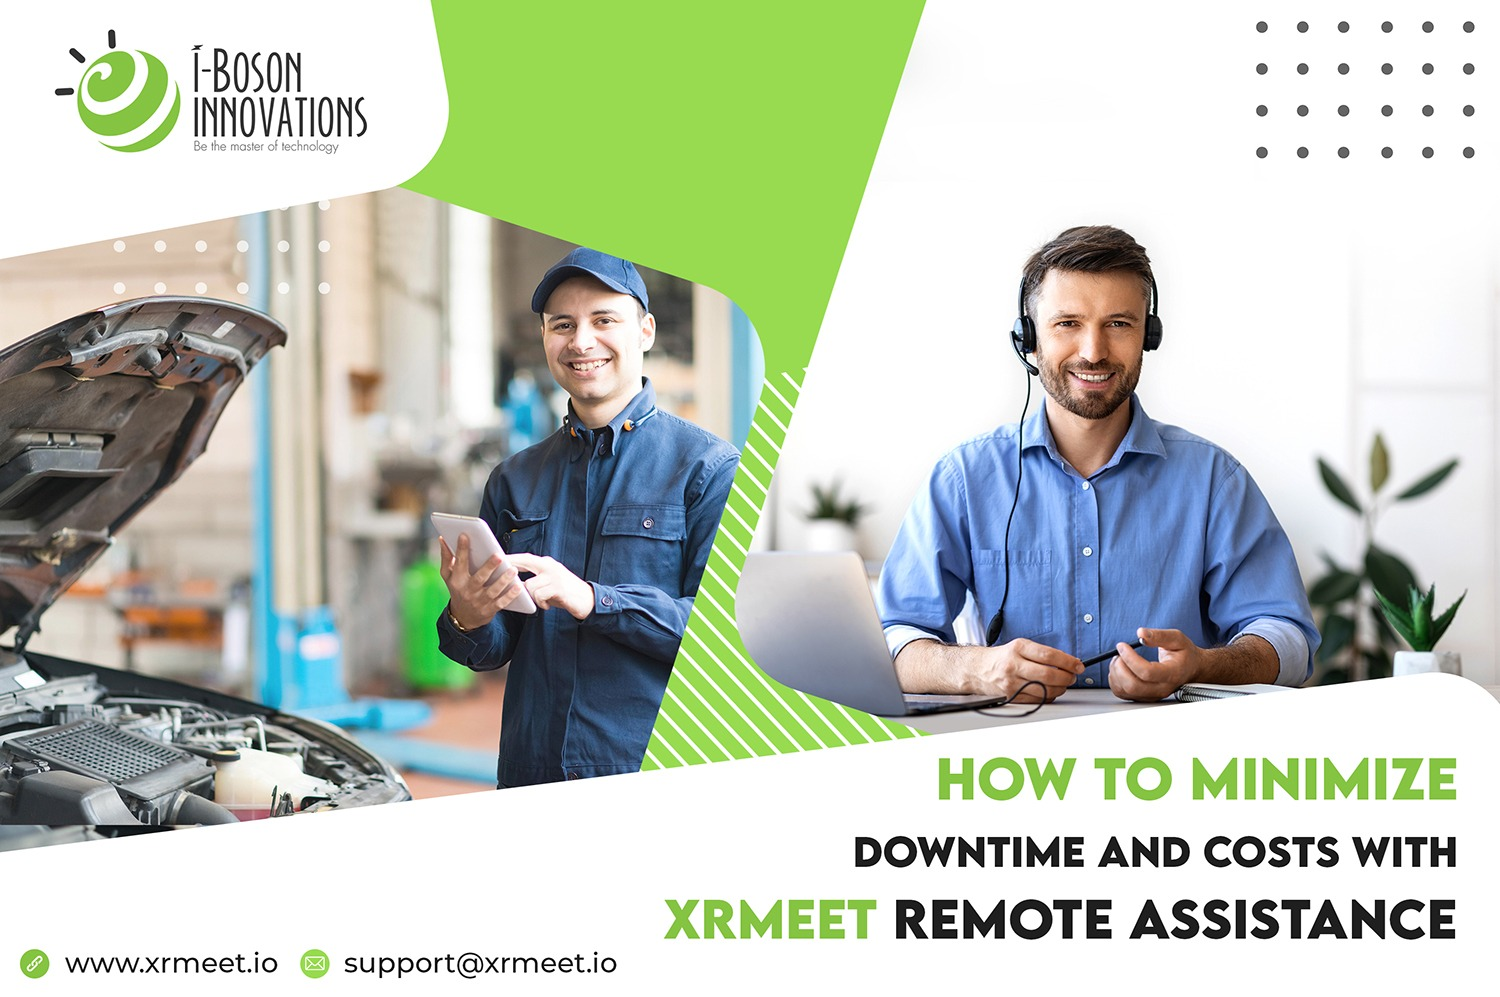 Minimize downtime and costs with XRmeet AR remote assistance